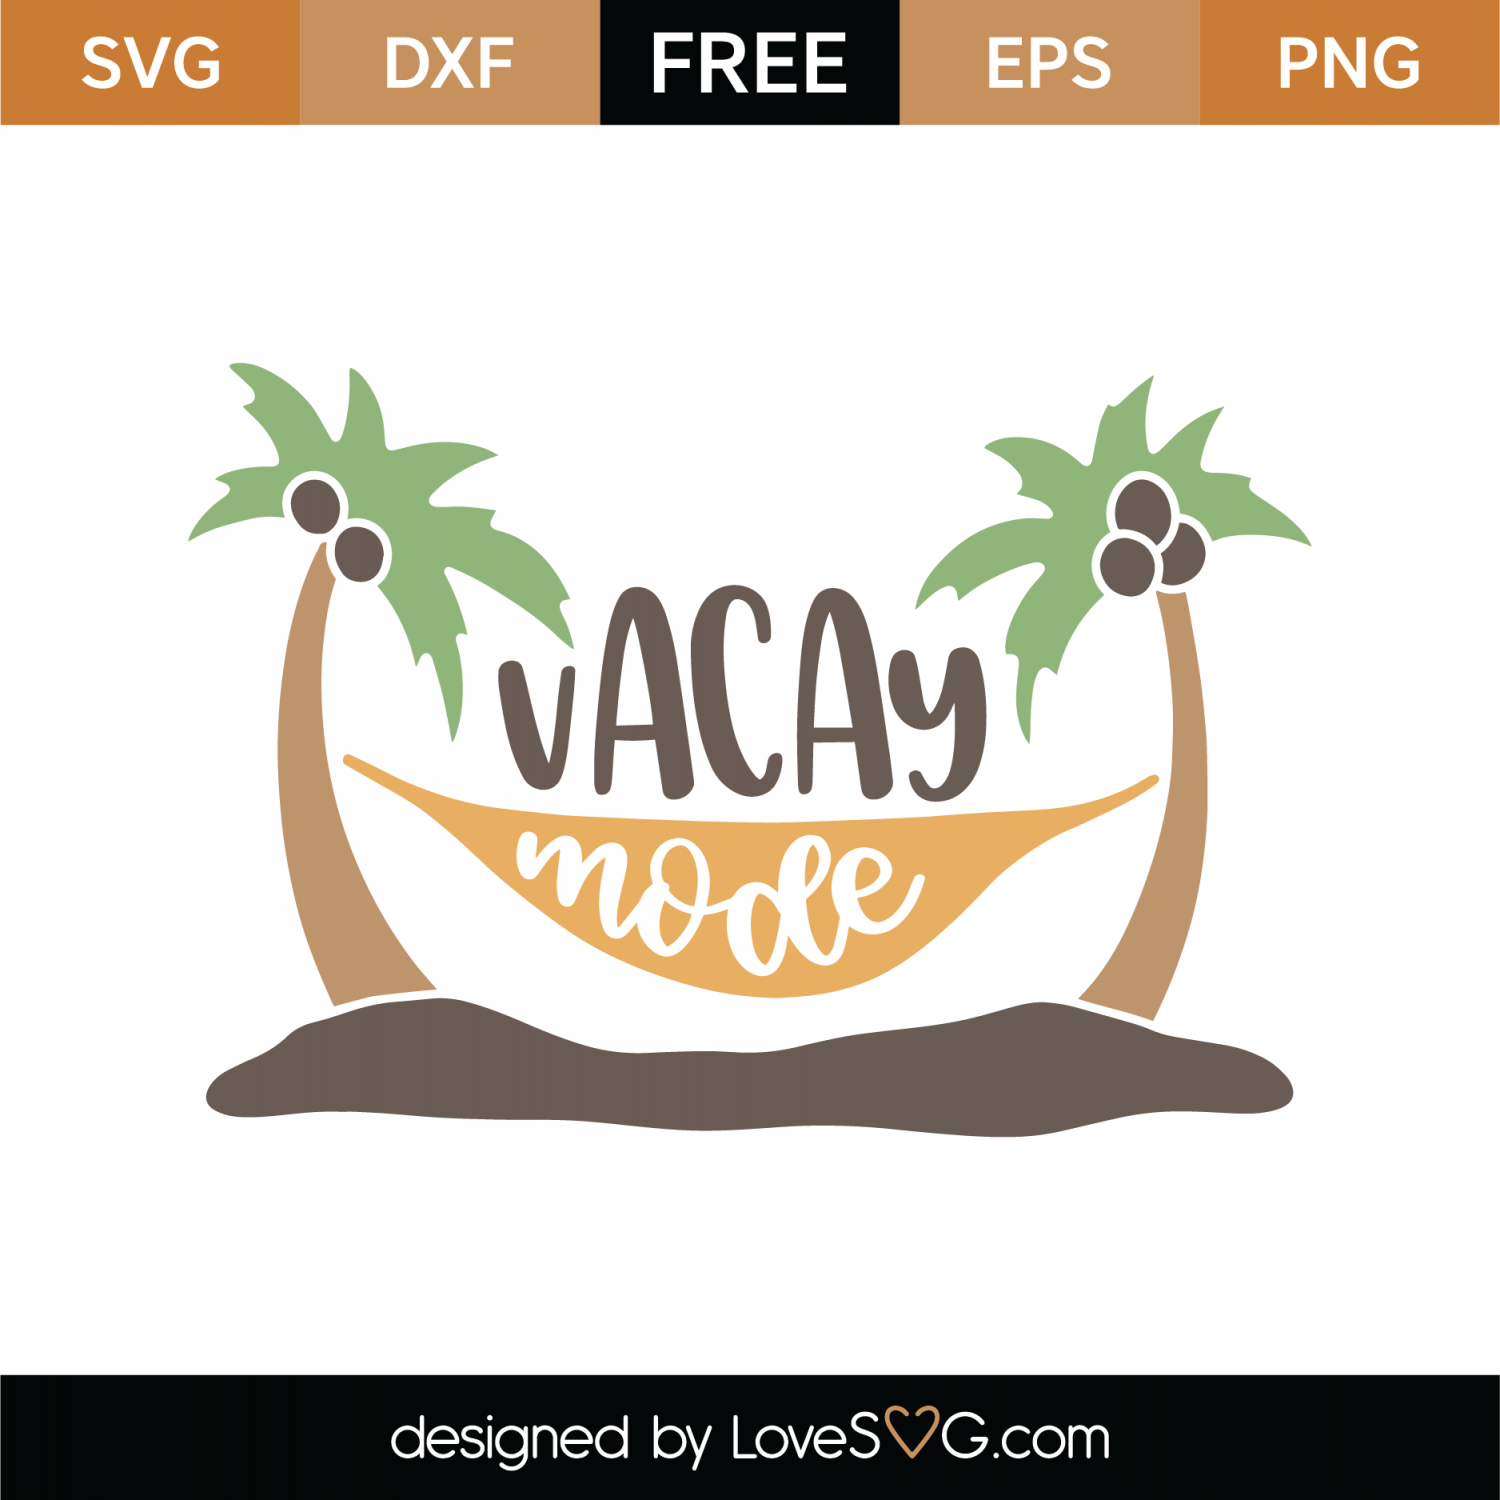 Free Vacay Mode SVG Cut File | Lovesvg com